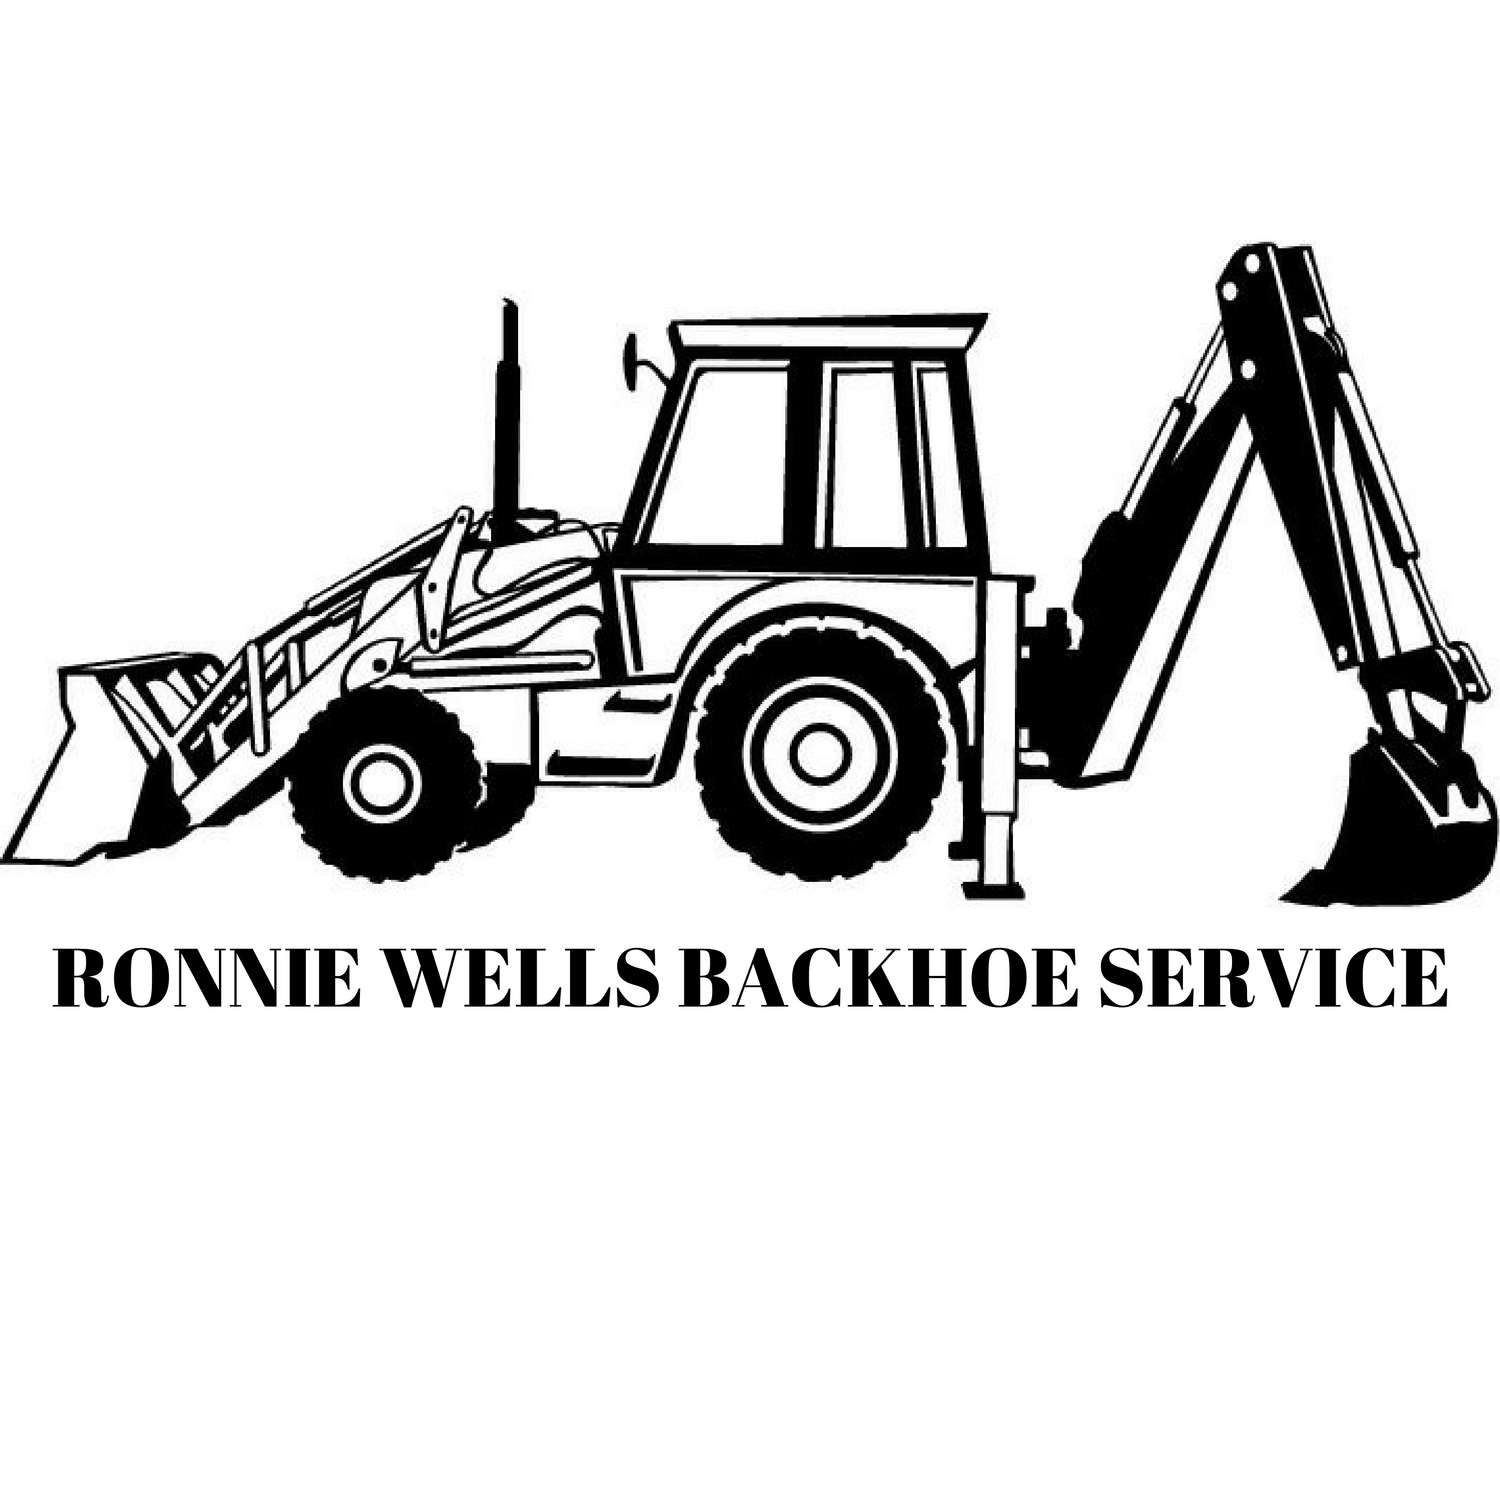 image of Ronnie Wells Backhoe Service